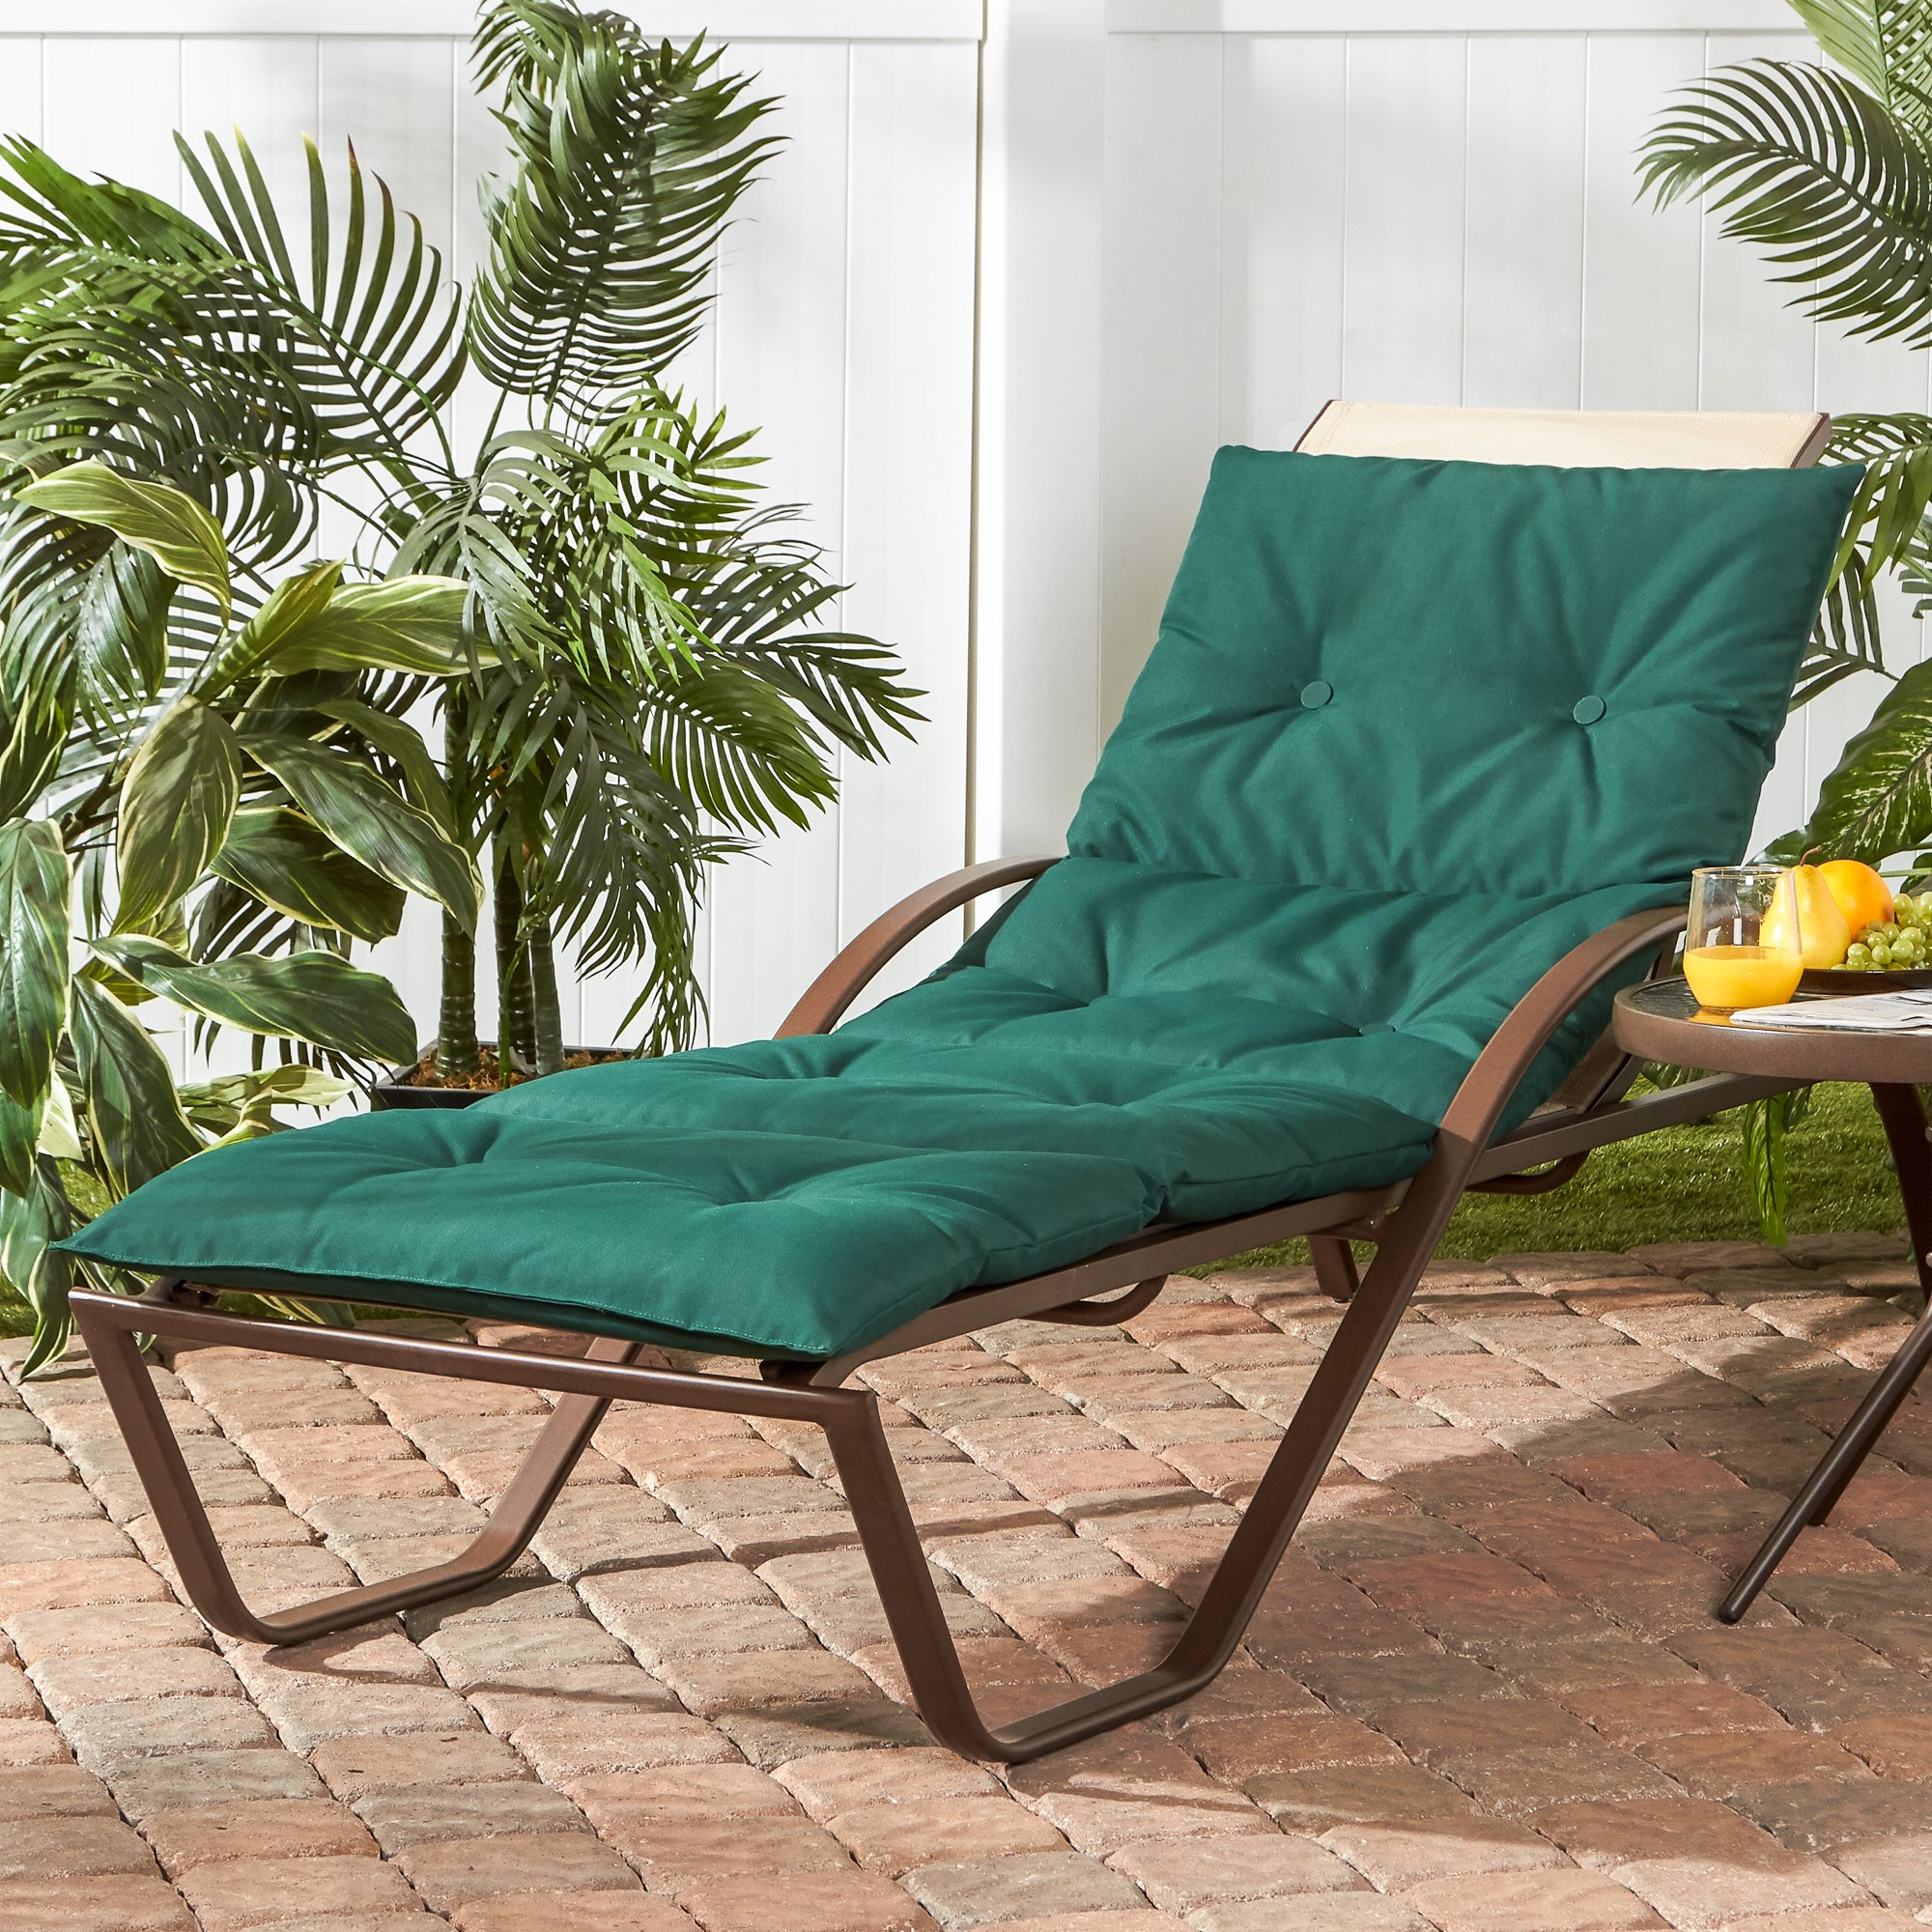 Greendale Home Fashions OC8665-FORESTGREEN Outdoor Lightweight Chaise Cushion, Forest Green